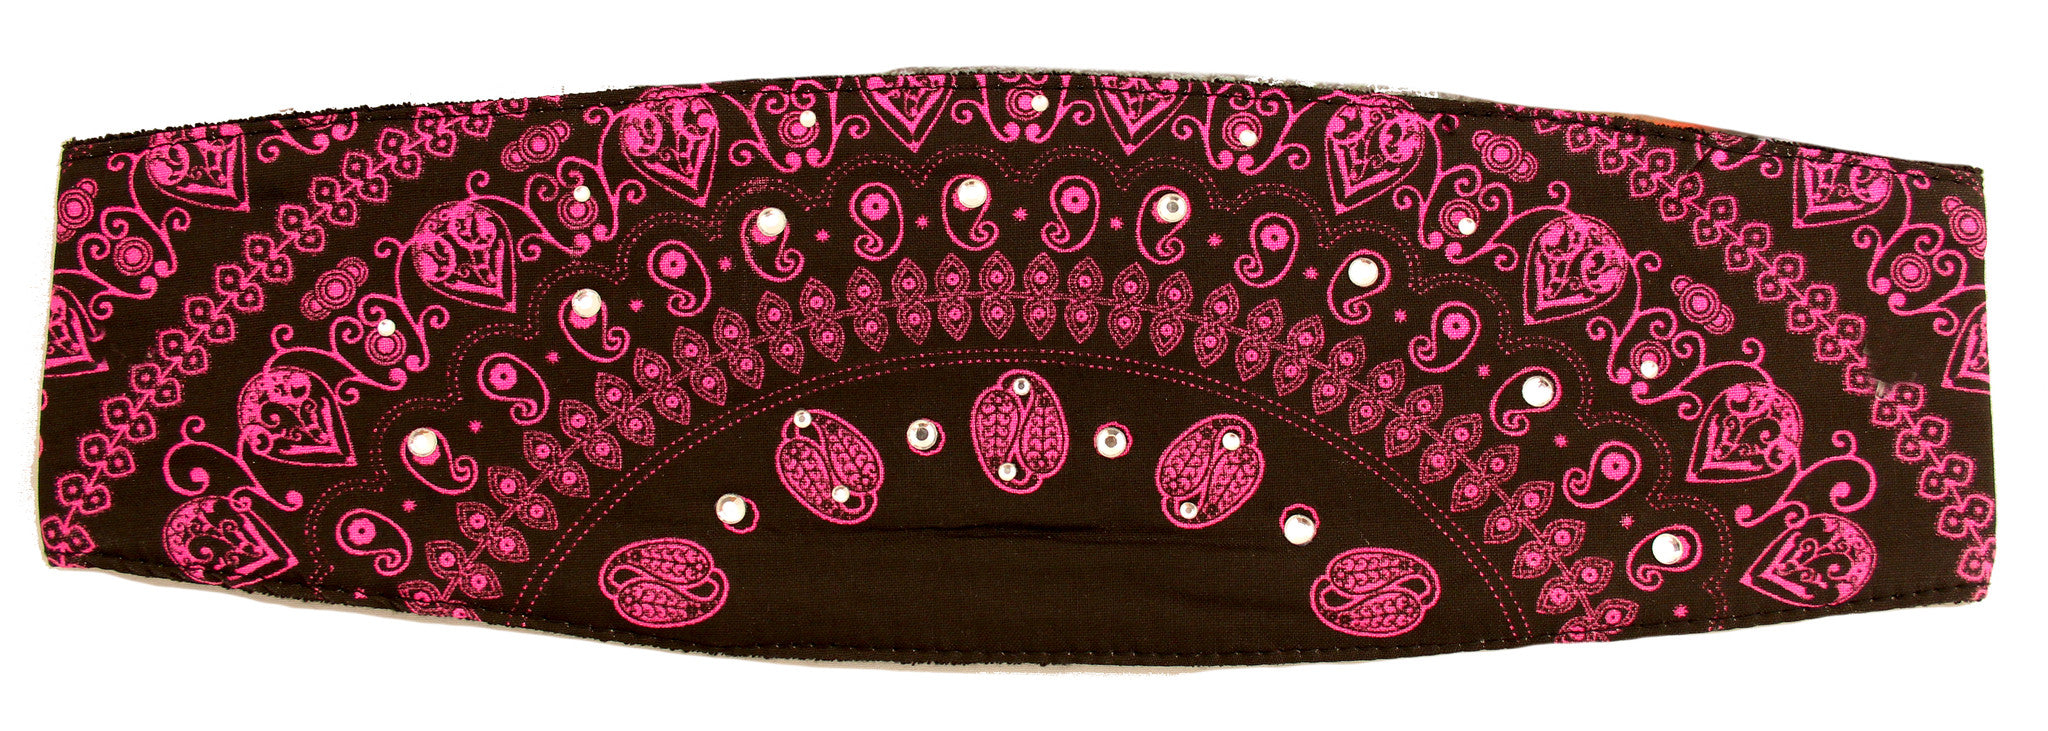 Lady Paisley Magenta Chop Top Bandana Headwrap with Rhinestones